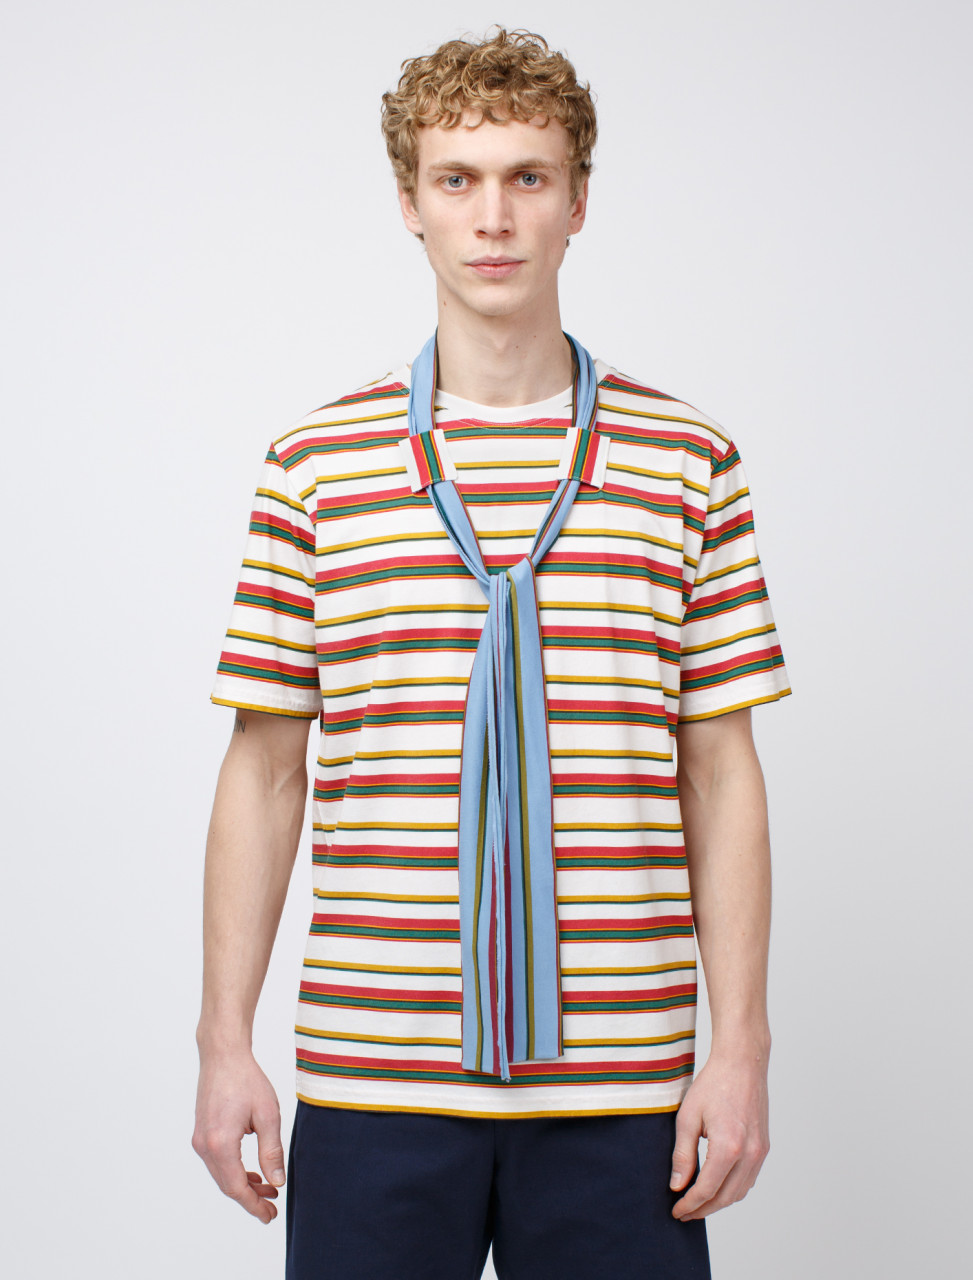 Printed Stripe and Tie Short Sleeve Shirt